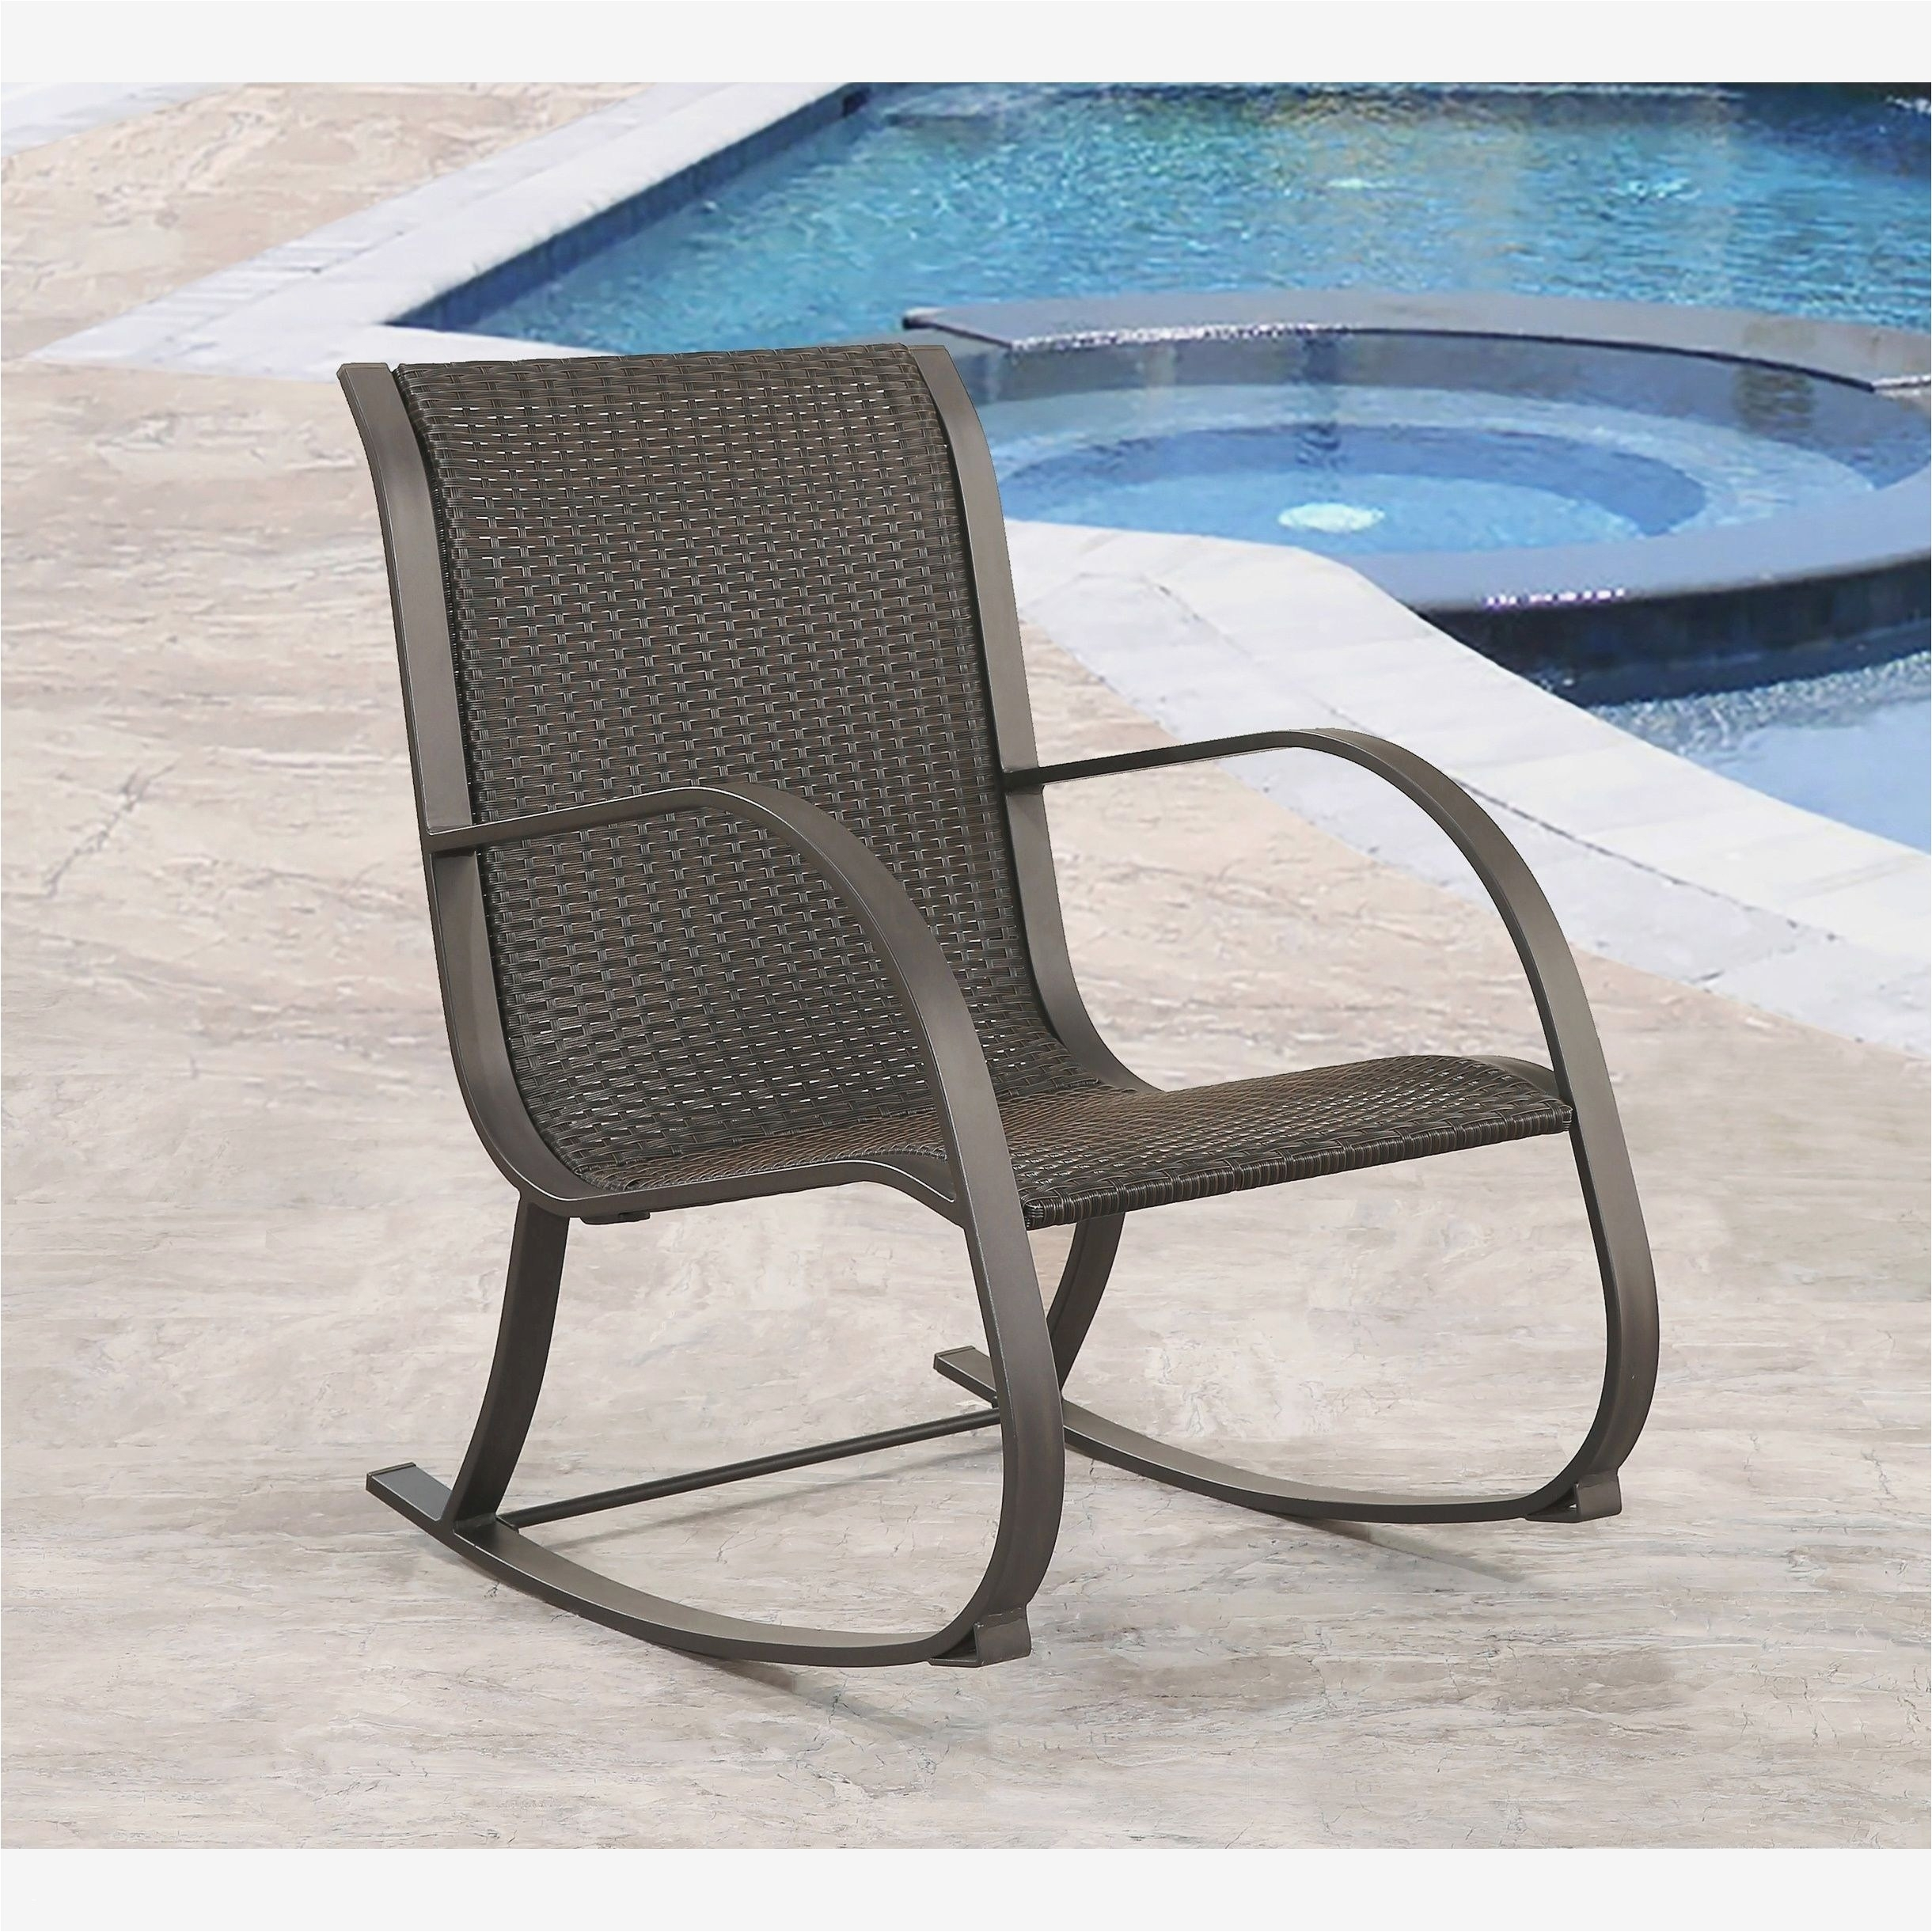 Awesome Rocking Chairs Patio Furniture Bellevuelittletheatre Ideas In Modern Patio Rocking Chairs (View 1 of 15)